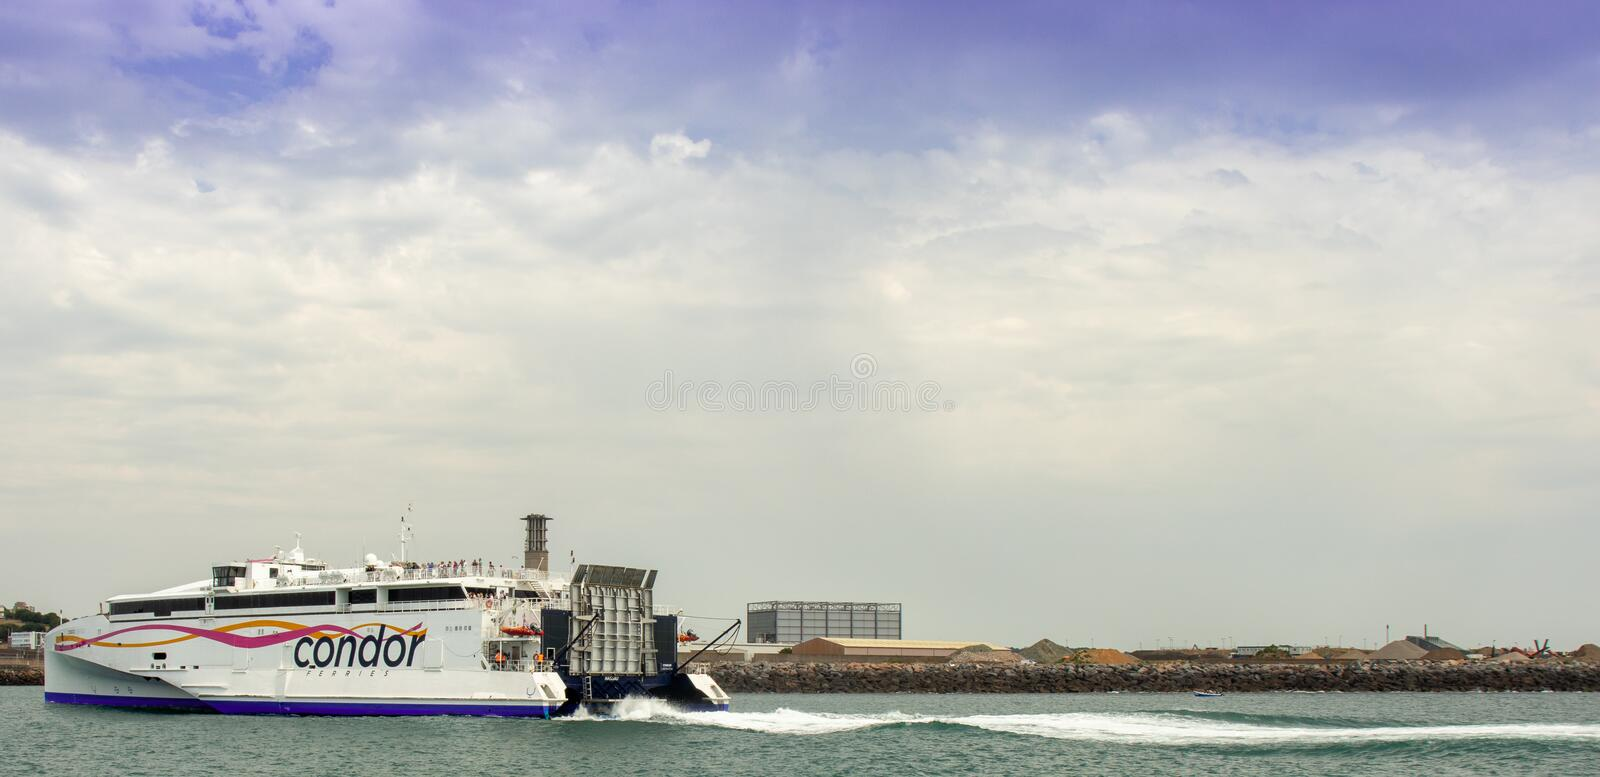 Car ferry about to dock in St Helier. St Helier, United Kingdom, - 07, 25, 2019: view from the sea of a car ferry arriving in port royalty free stock images